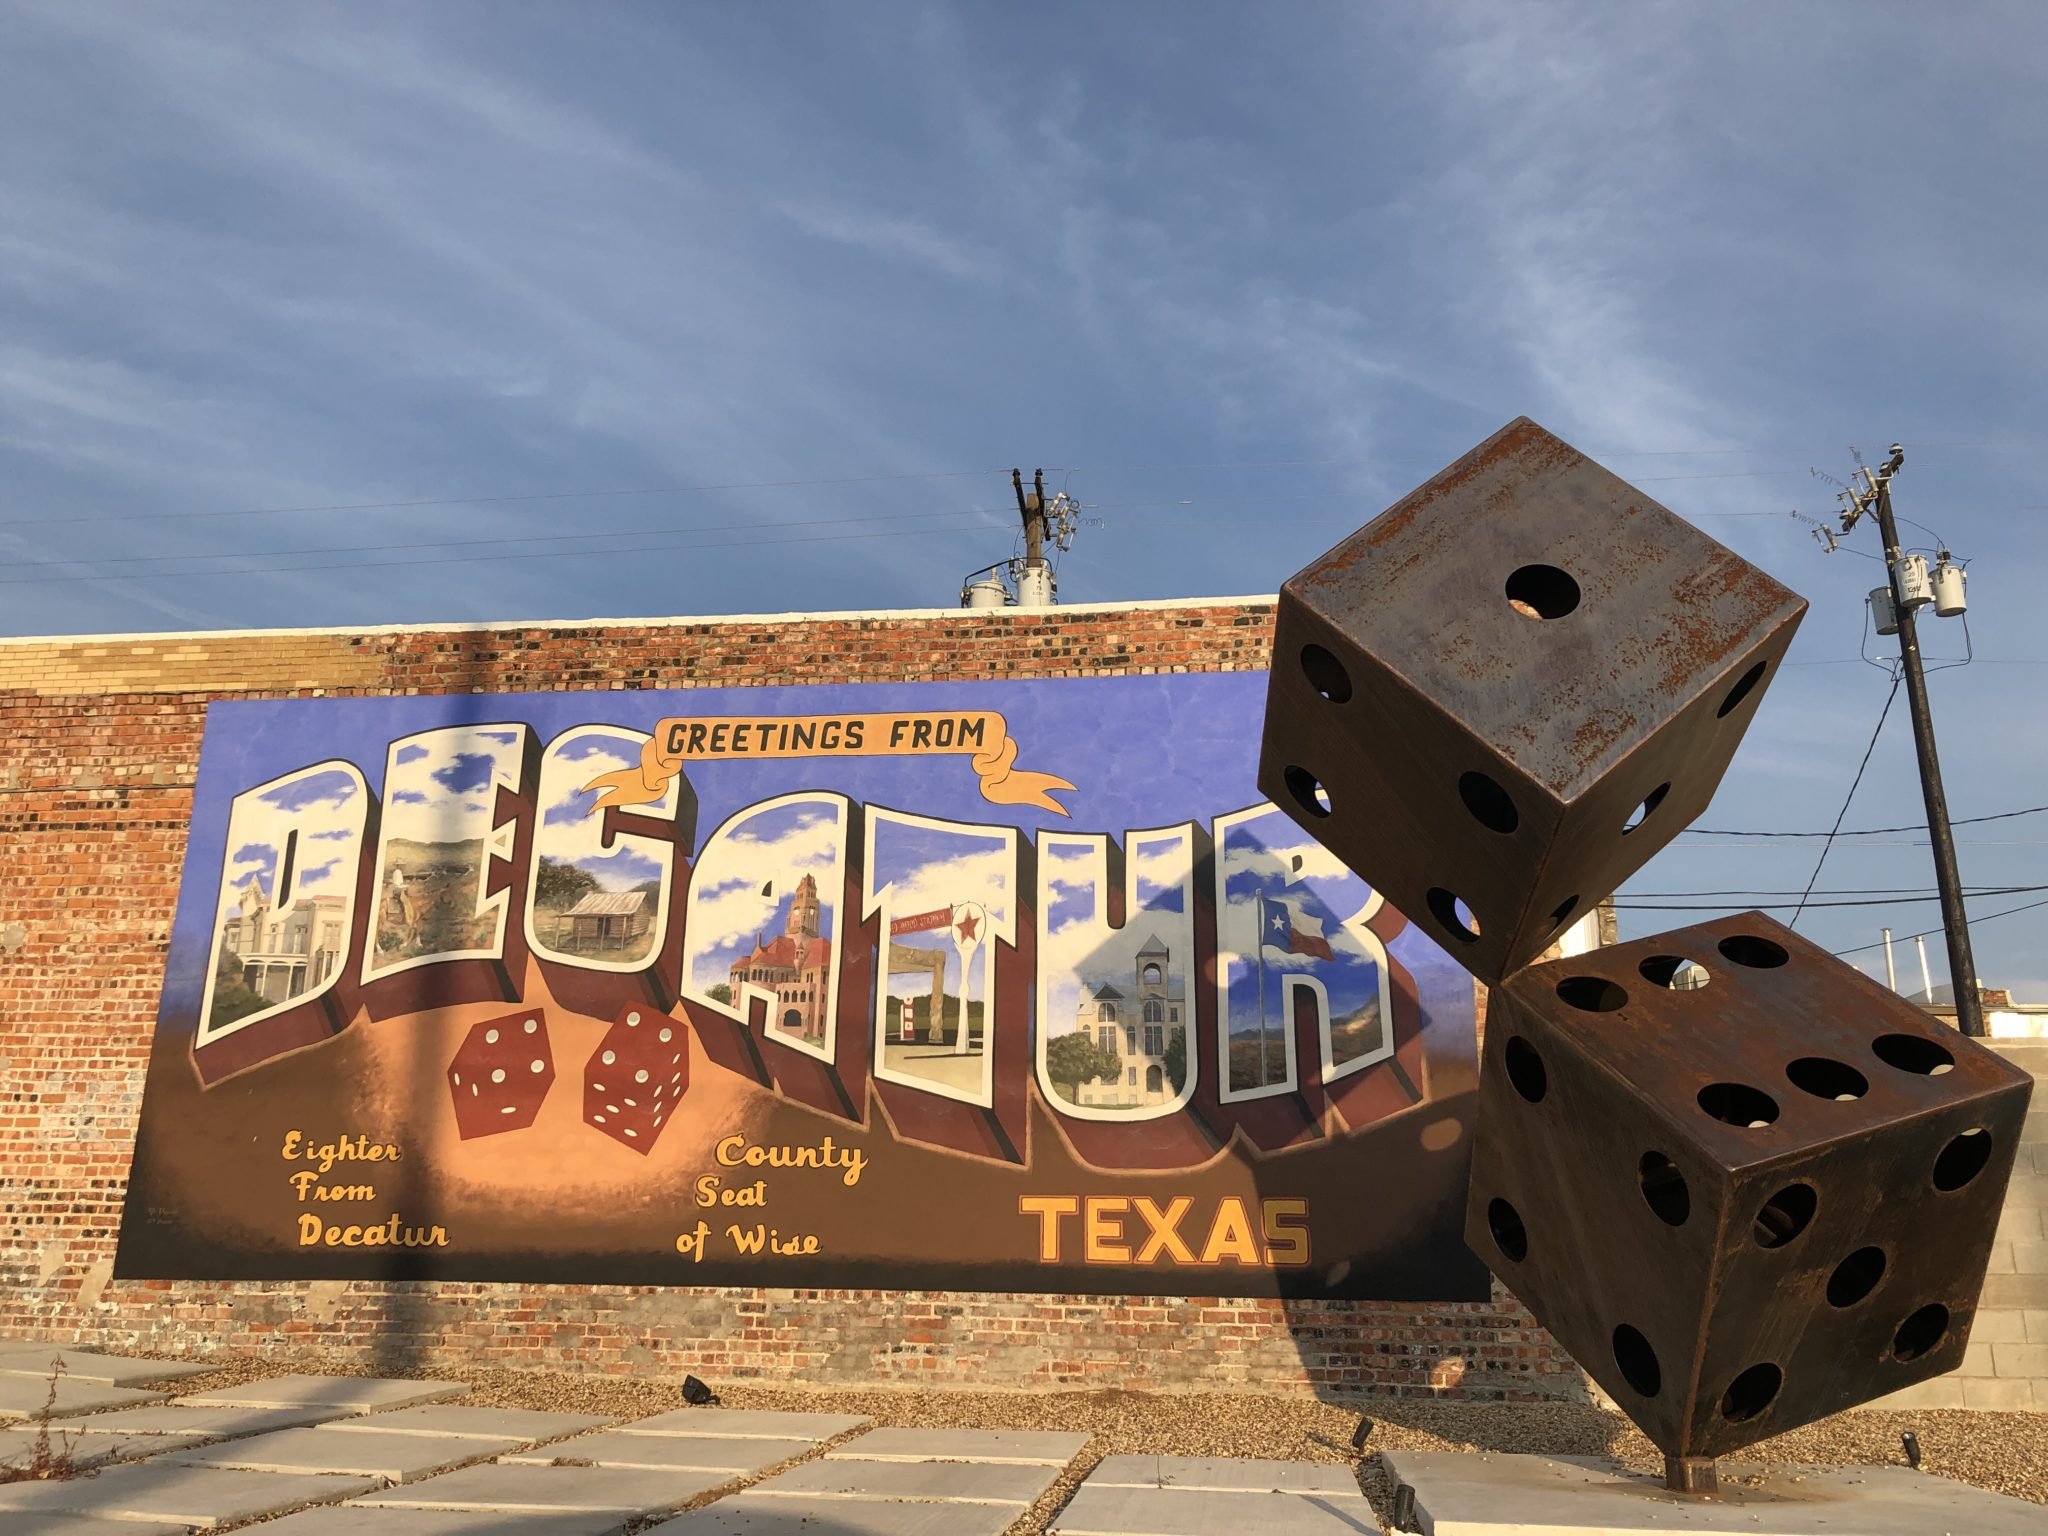 Experiencing Old-Timey Decatur, Texas